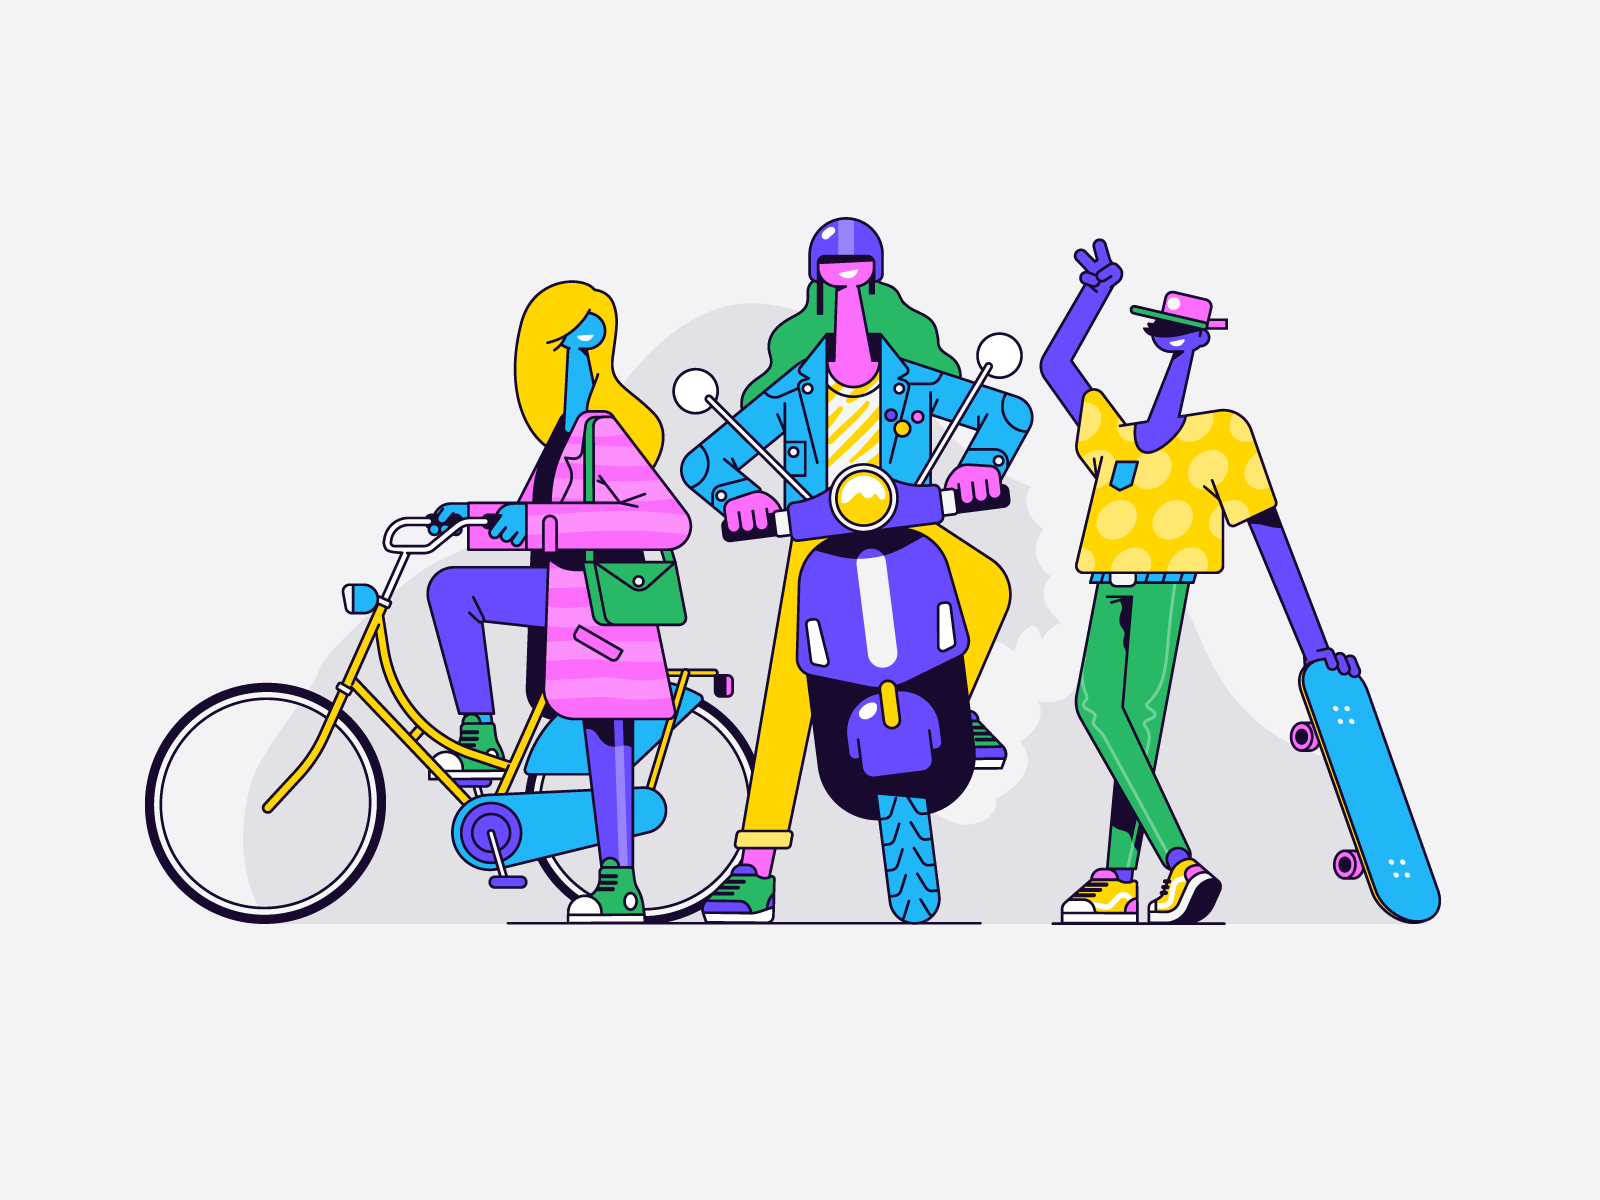 The cool kids by Patswerk